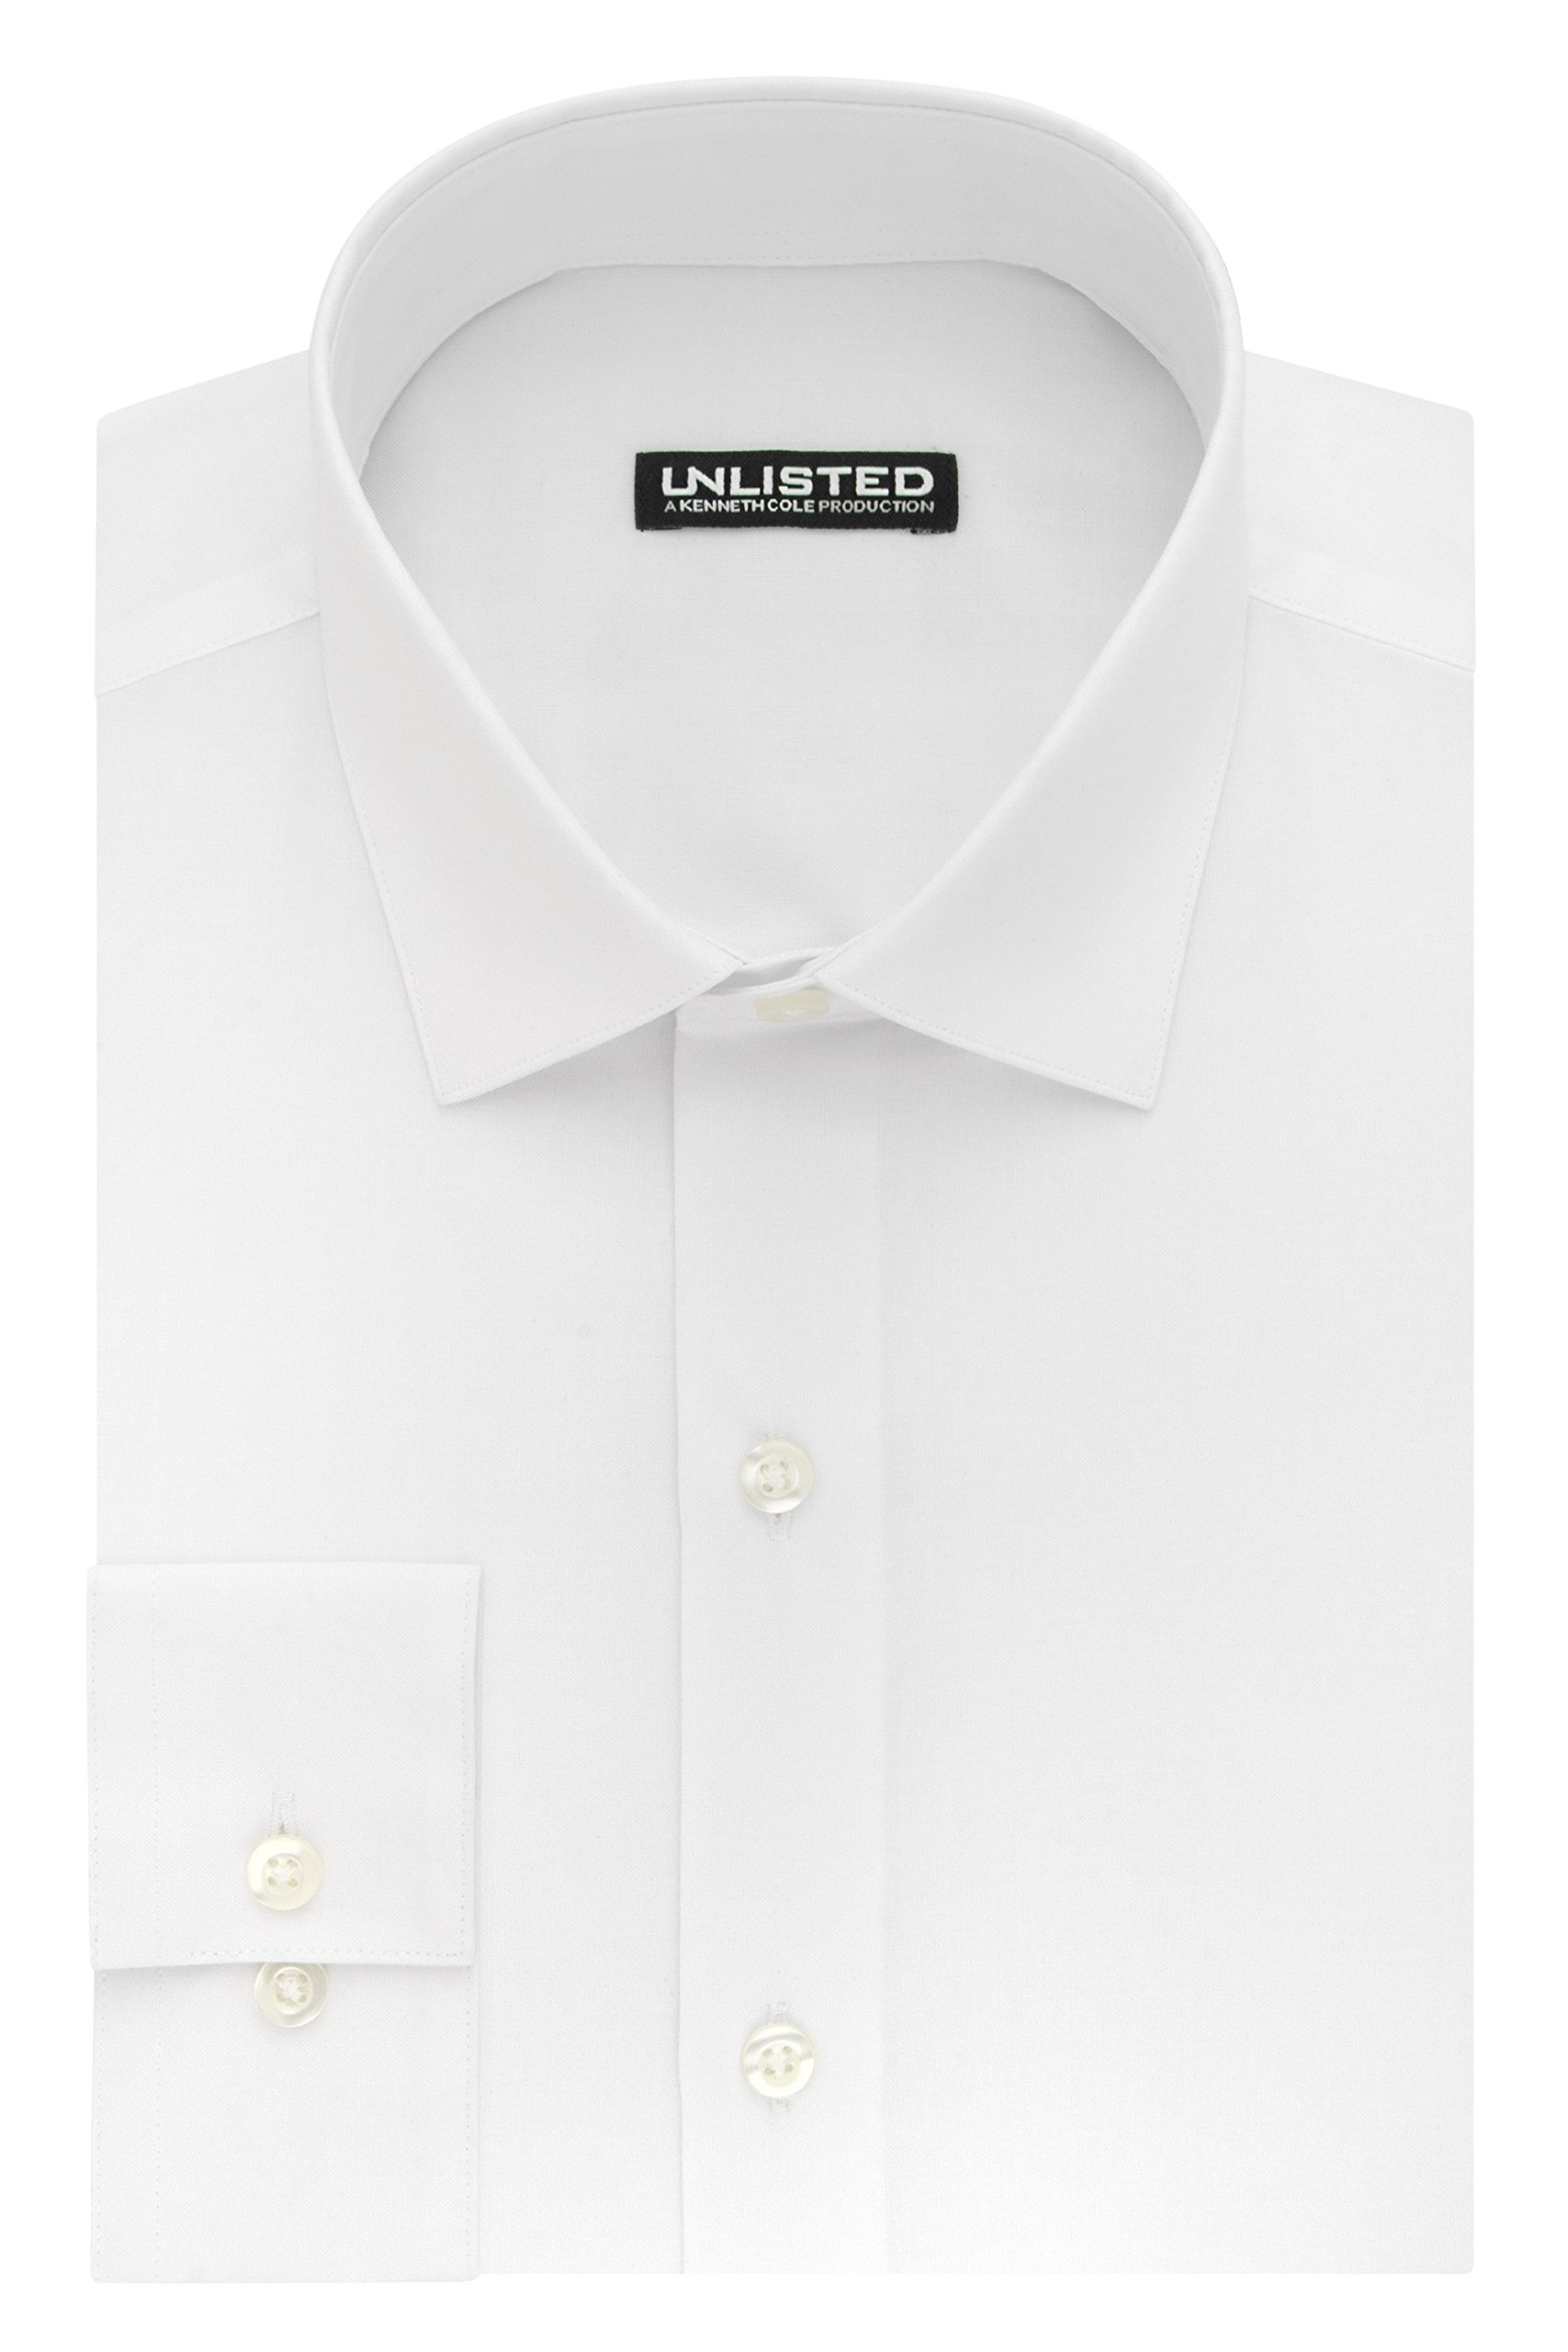 Kenneth Cole REACTION Unlisted by Men's Slim Fit Solid Spread Collar Dress Shirt, White, 18''-18.5'' Neck 34''-35'' Sleeve